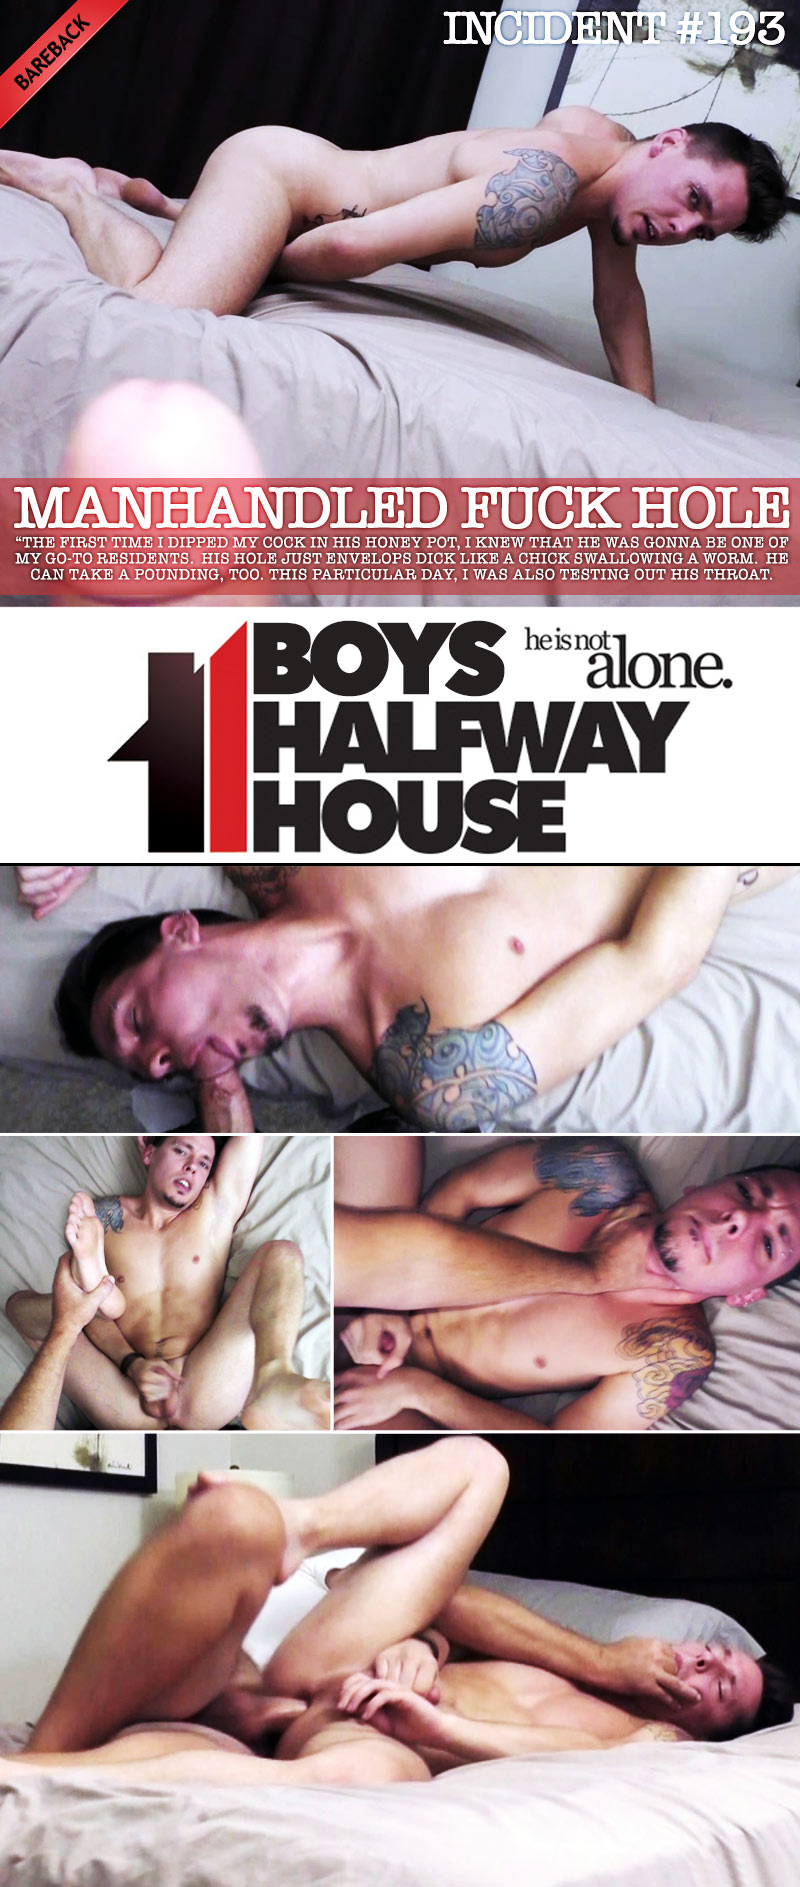 Incident #193: Manhandled Fuck Hole (with Trayce Travis) at Boys Halfway House